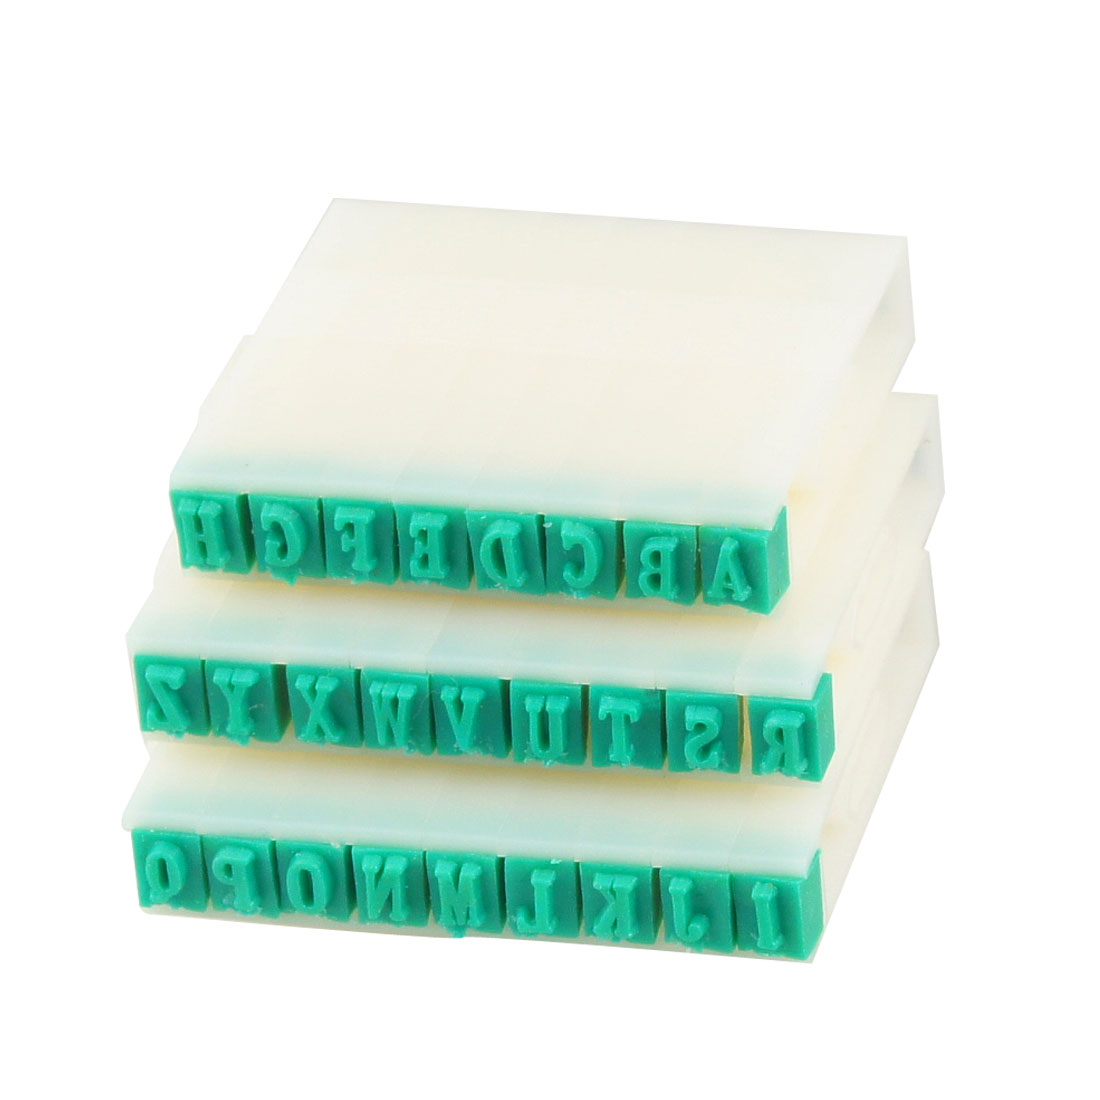 26 in 1 Alphabet Part Hard Plastic Stamp Set White Green